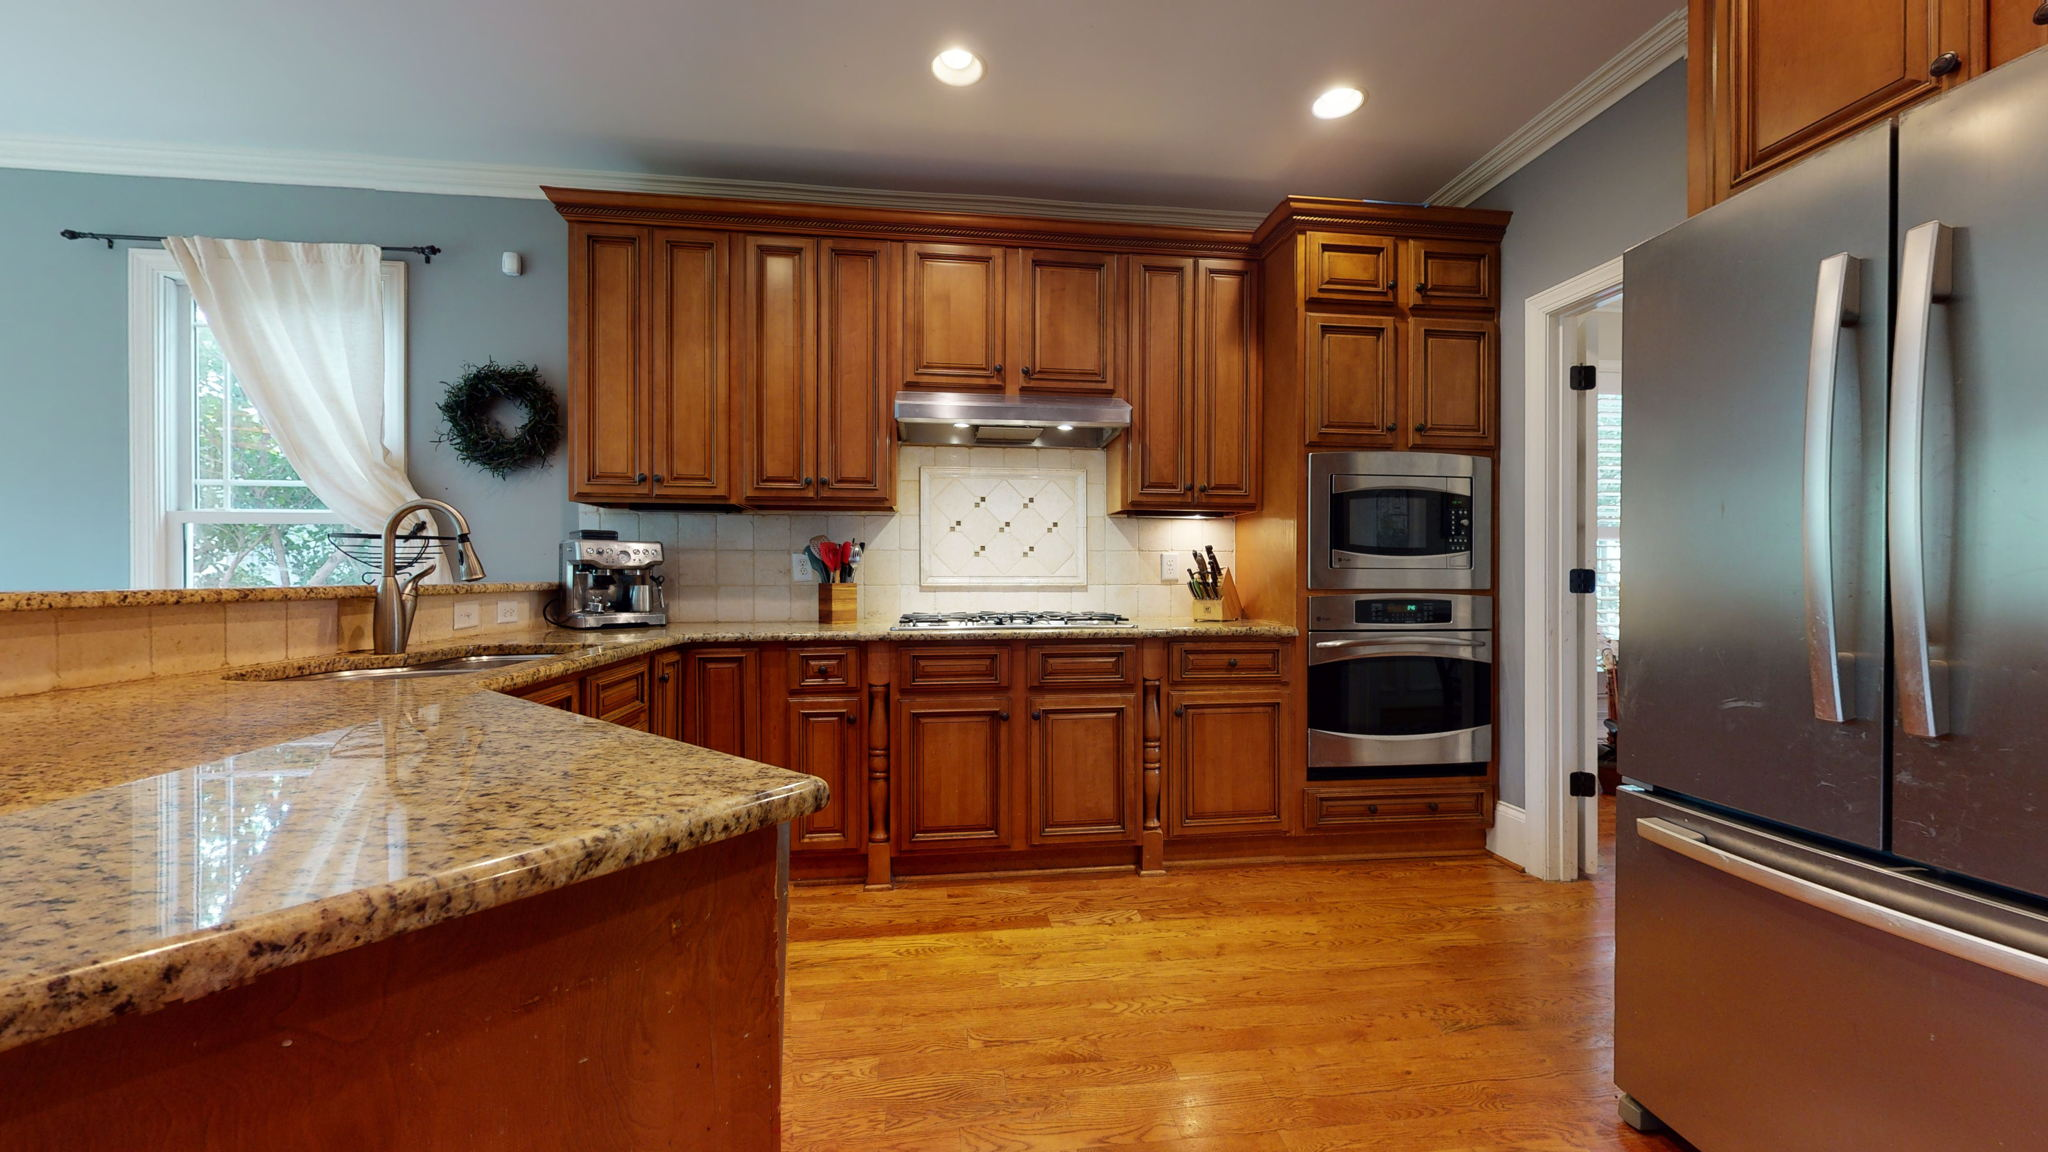 305 Russo Valley Dr, Cary, NC 27519, USA Photo 22